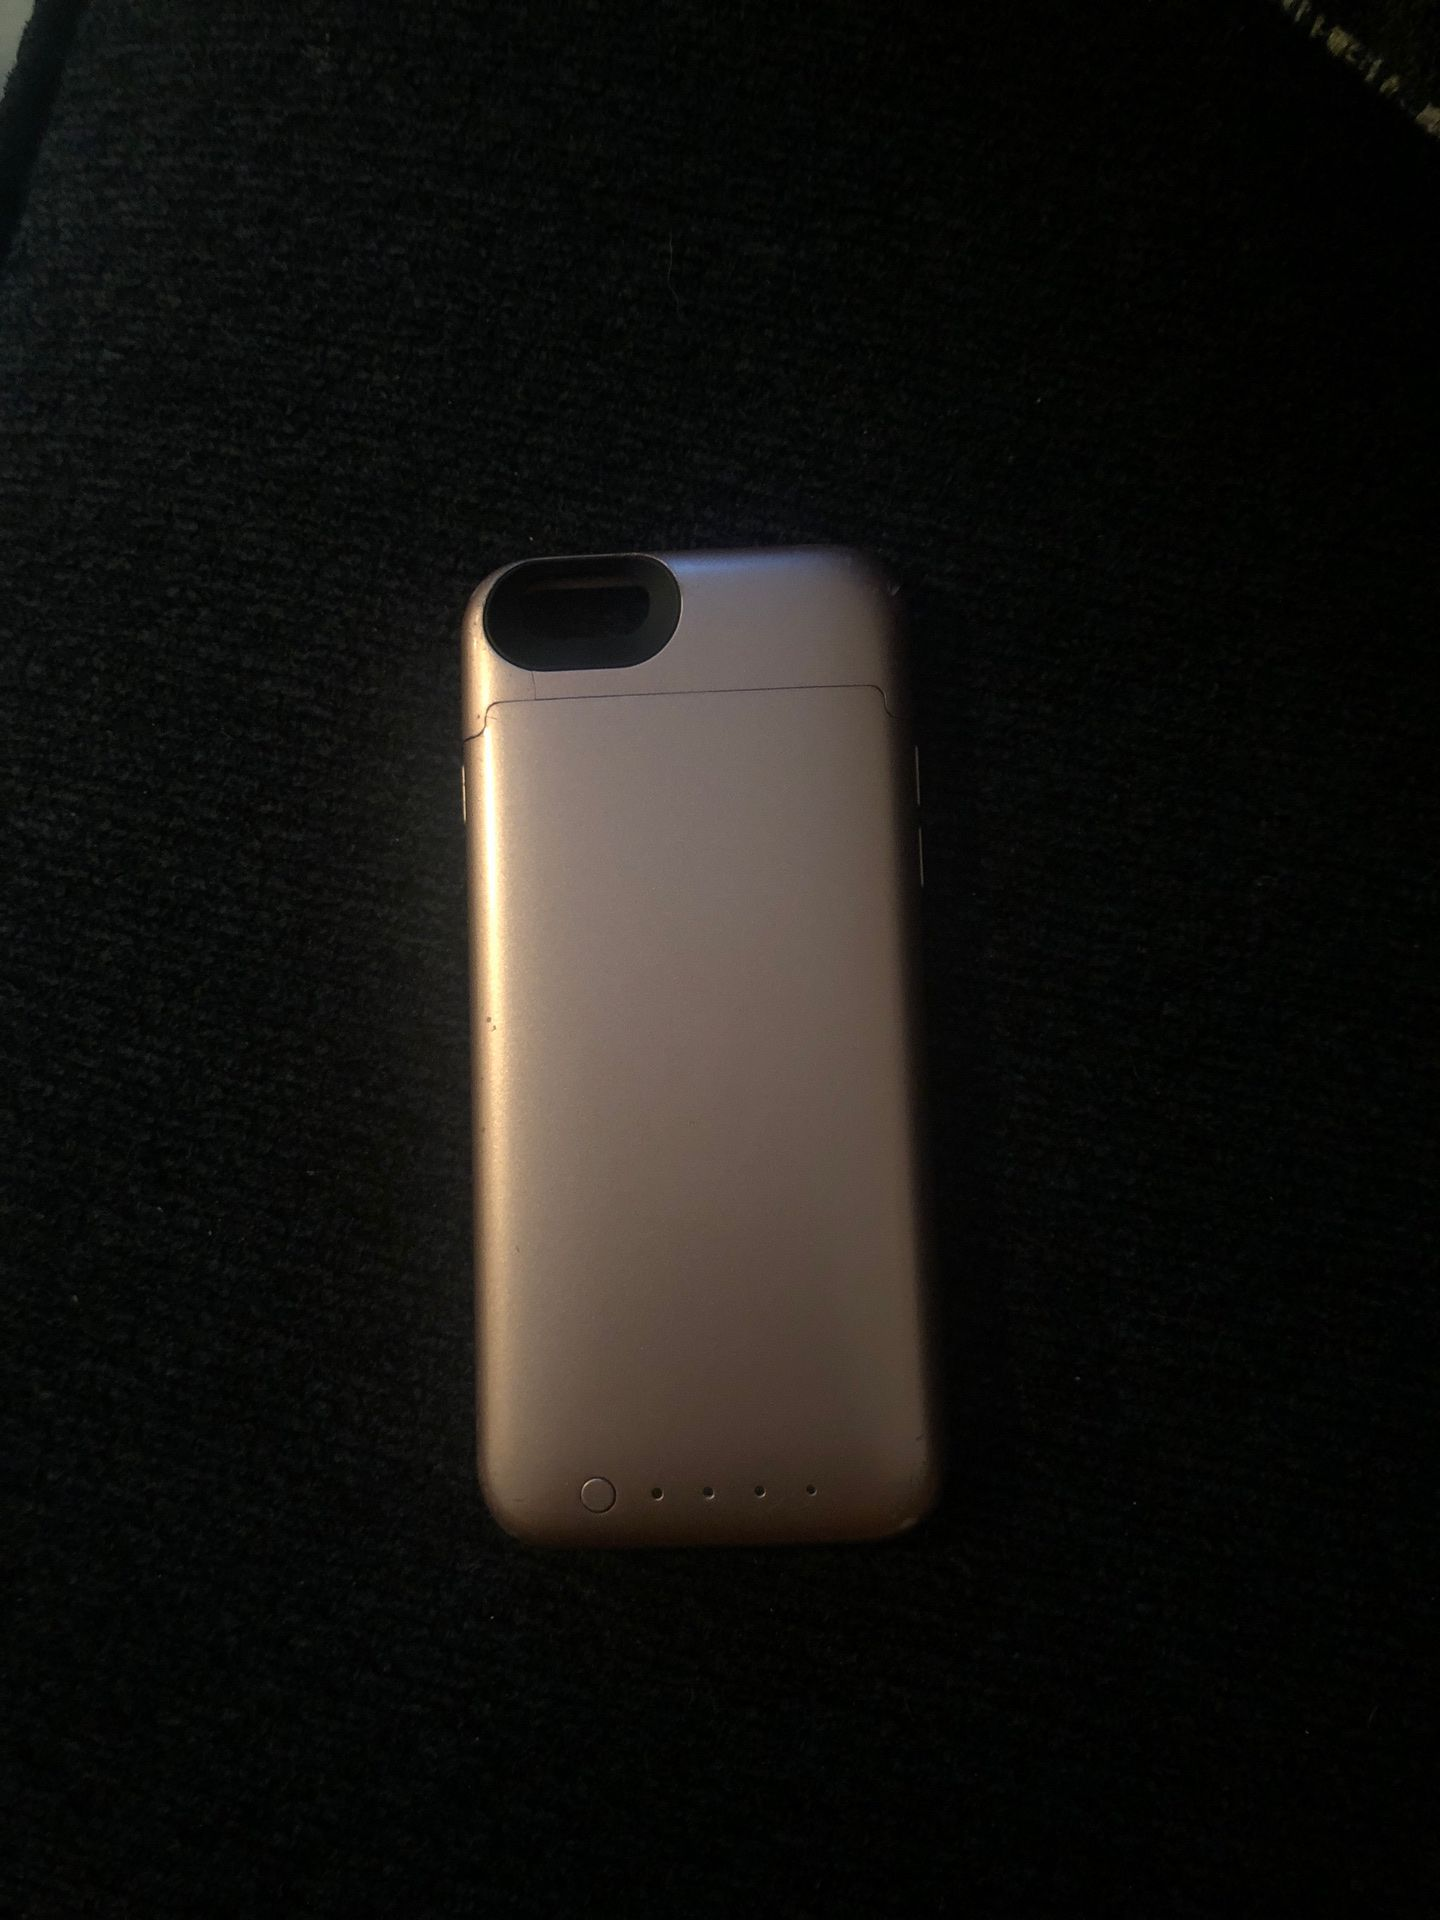 iphone 6 mophie case rose gold color